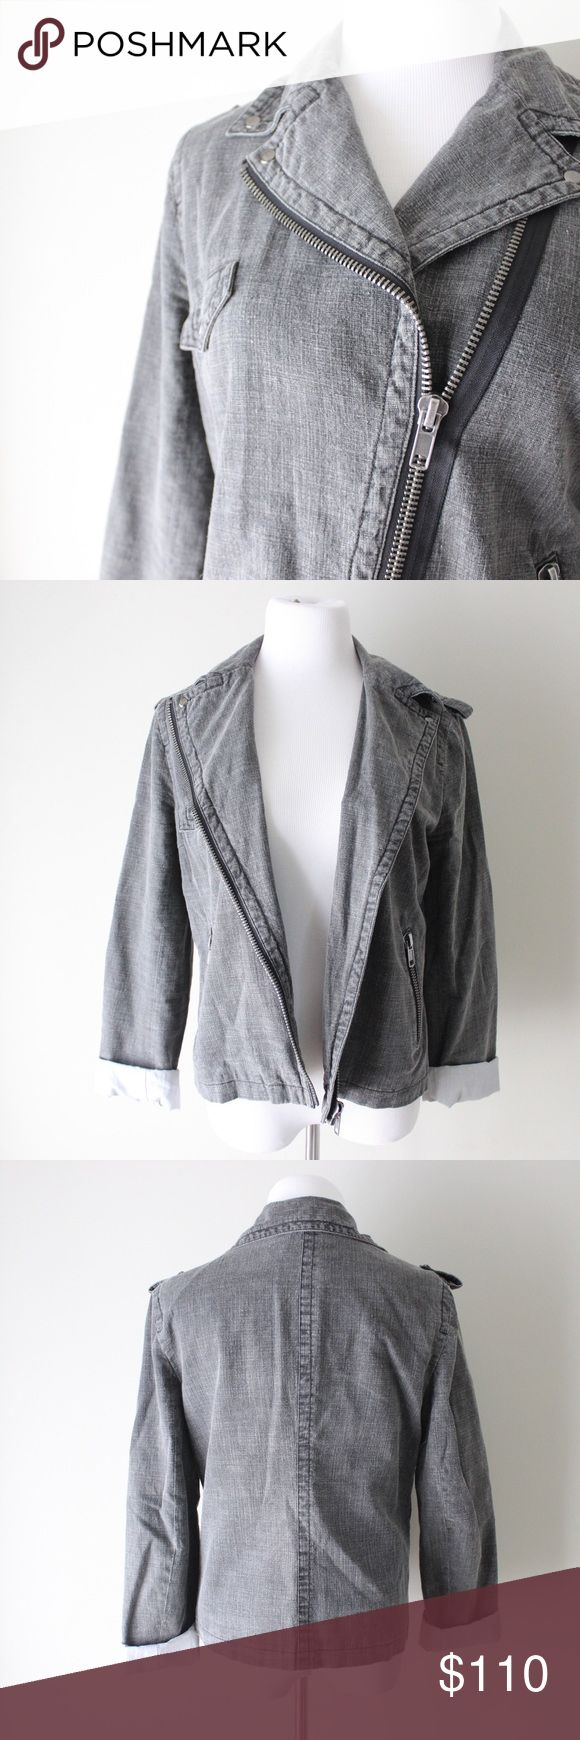 Charlotte Ronson Pinstripe Lined Denim Jacket Charlotte Ronson gray denim jacket with front zip closure.  Fits true to size.  In gently used good condition.  Measurements available upon request.  All orders ship same or next business day! Charlotte Ronson Jackets & Coats